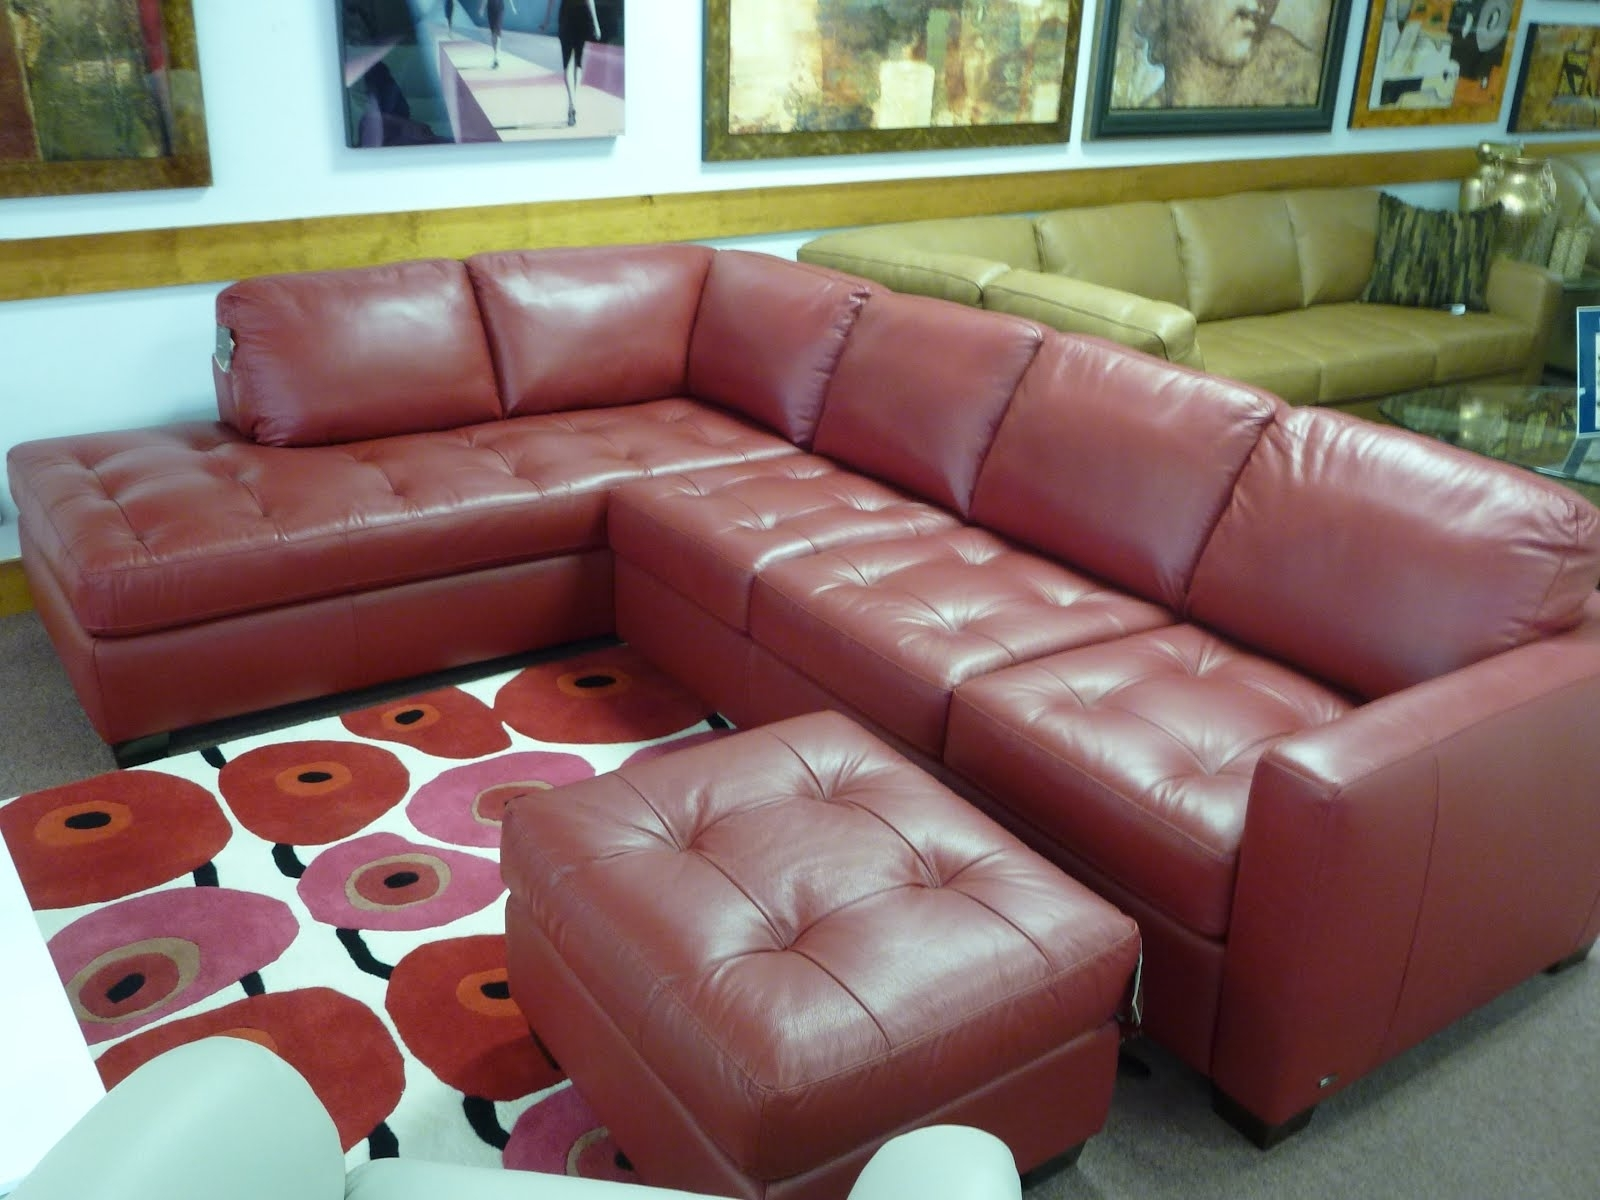 Trendy Red Leather Sectional Sofas With Ottoman In Sectional Sofa Design: Wonderful Natuzzi Leather Sectional Sofa (View 13 of 20)